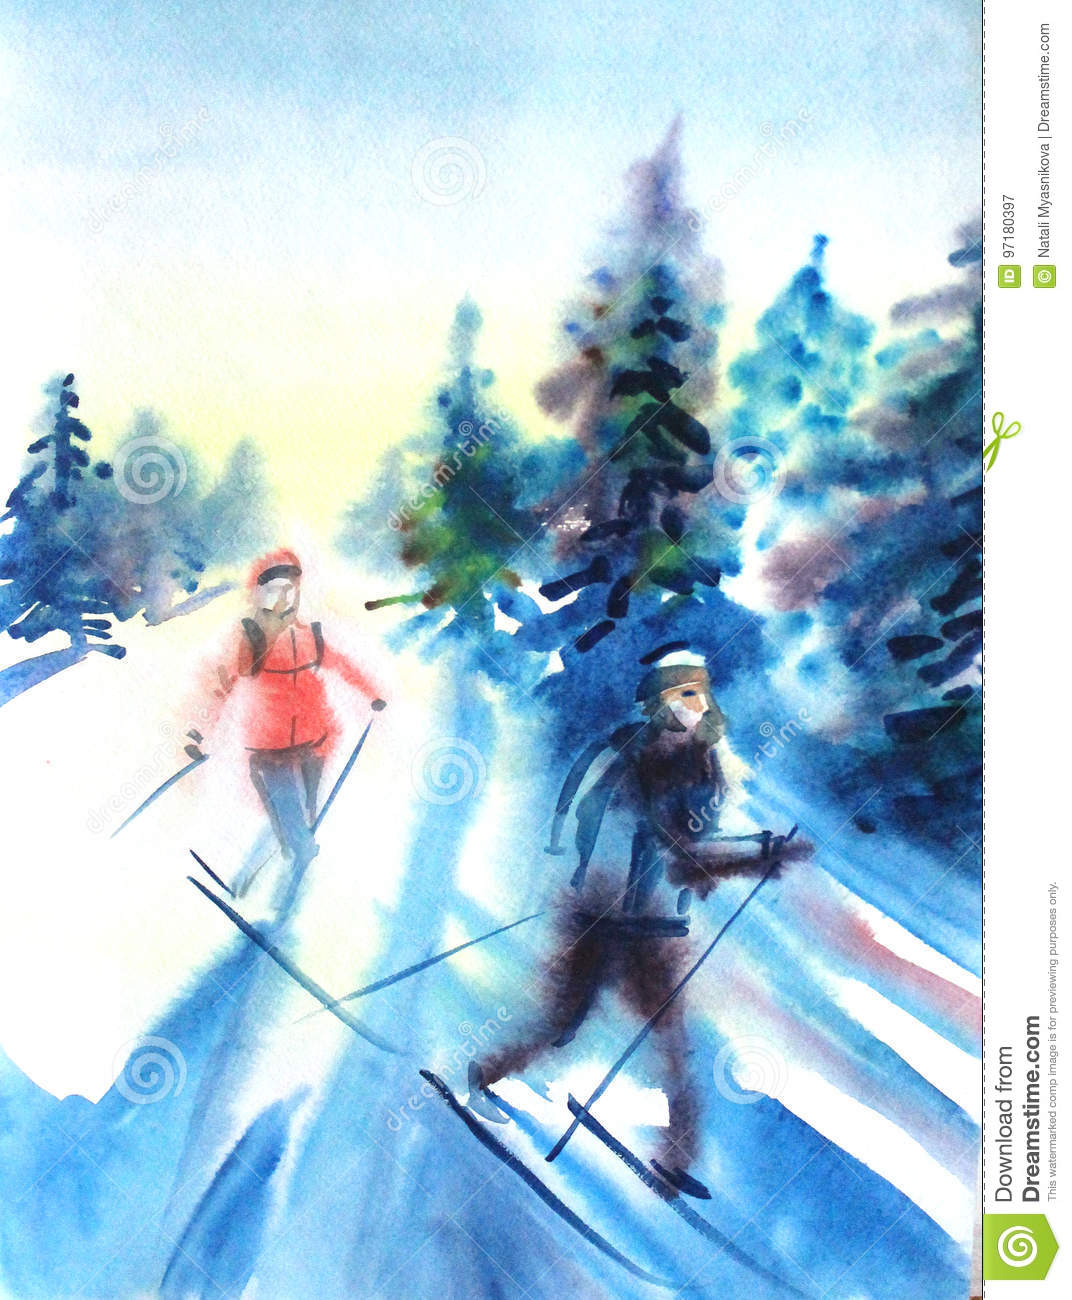 Watercolor Drawing Painting Female And Male On Ski In Winer Snow Forest Sport Ski Nature Concept Stock Illustration Illustration Of Climate Blue 97180397